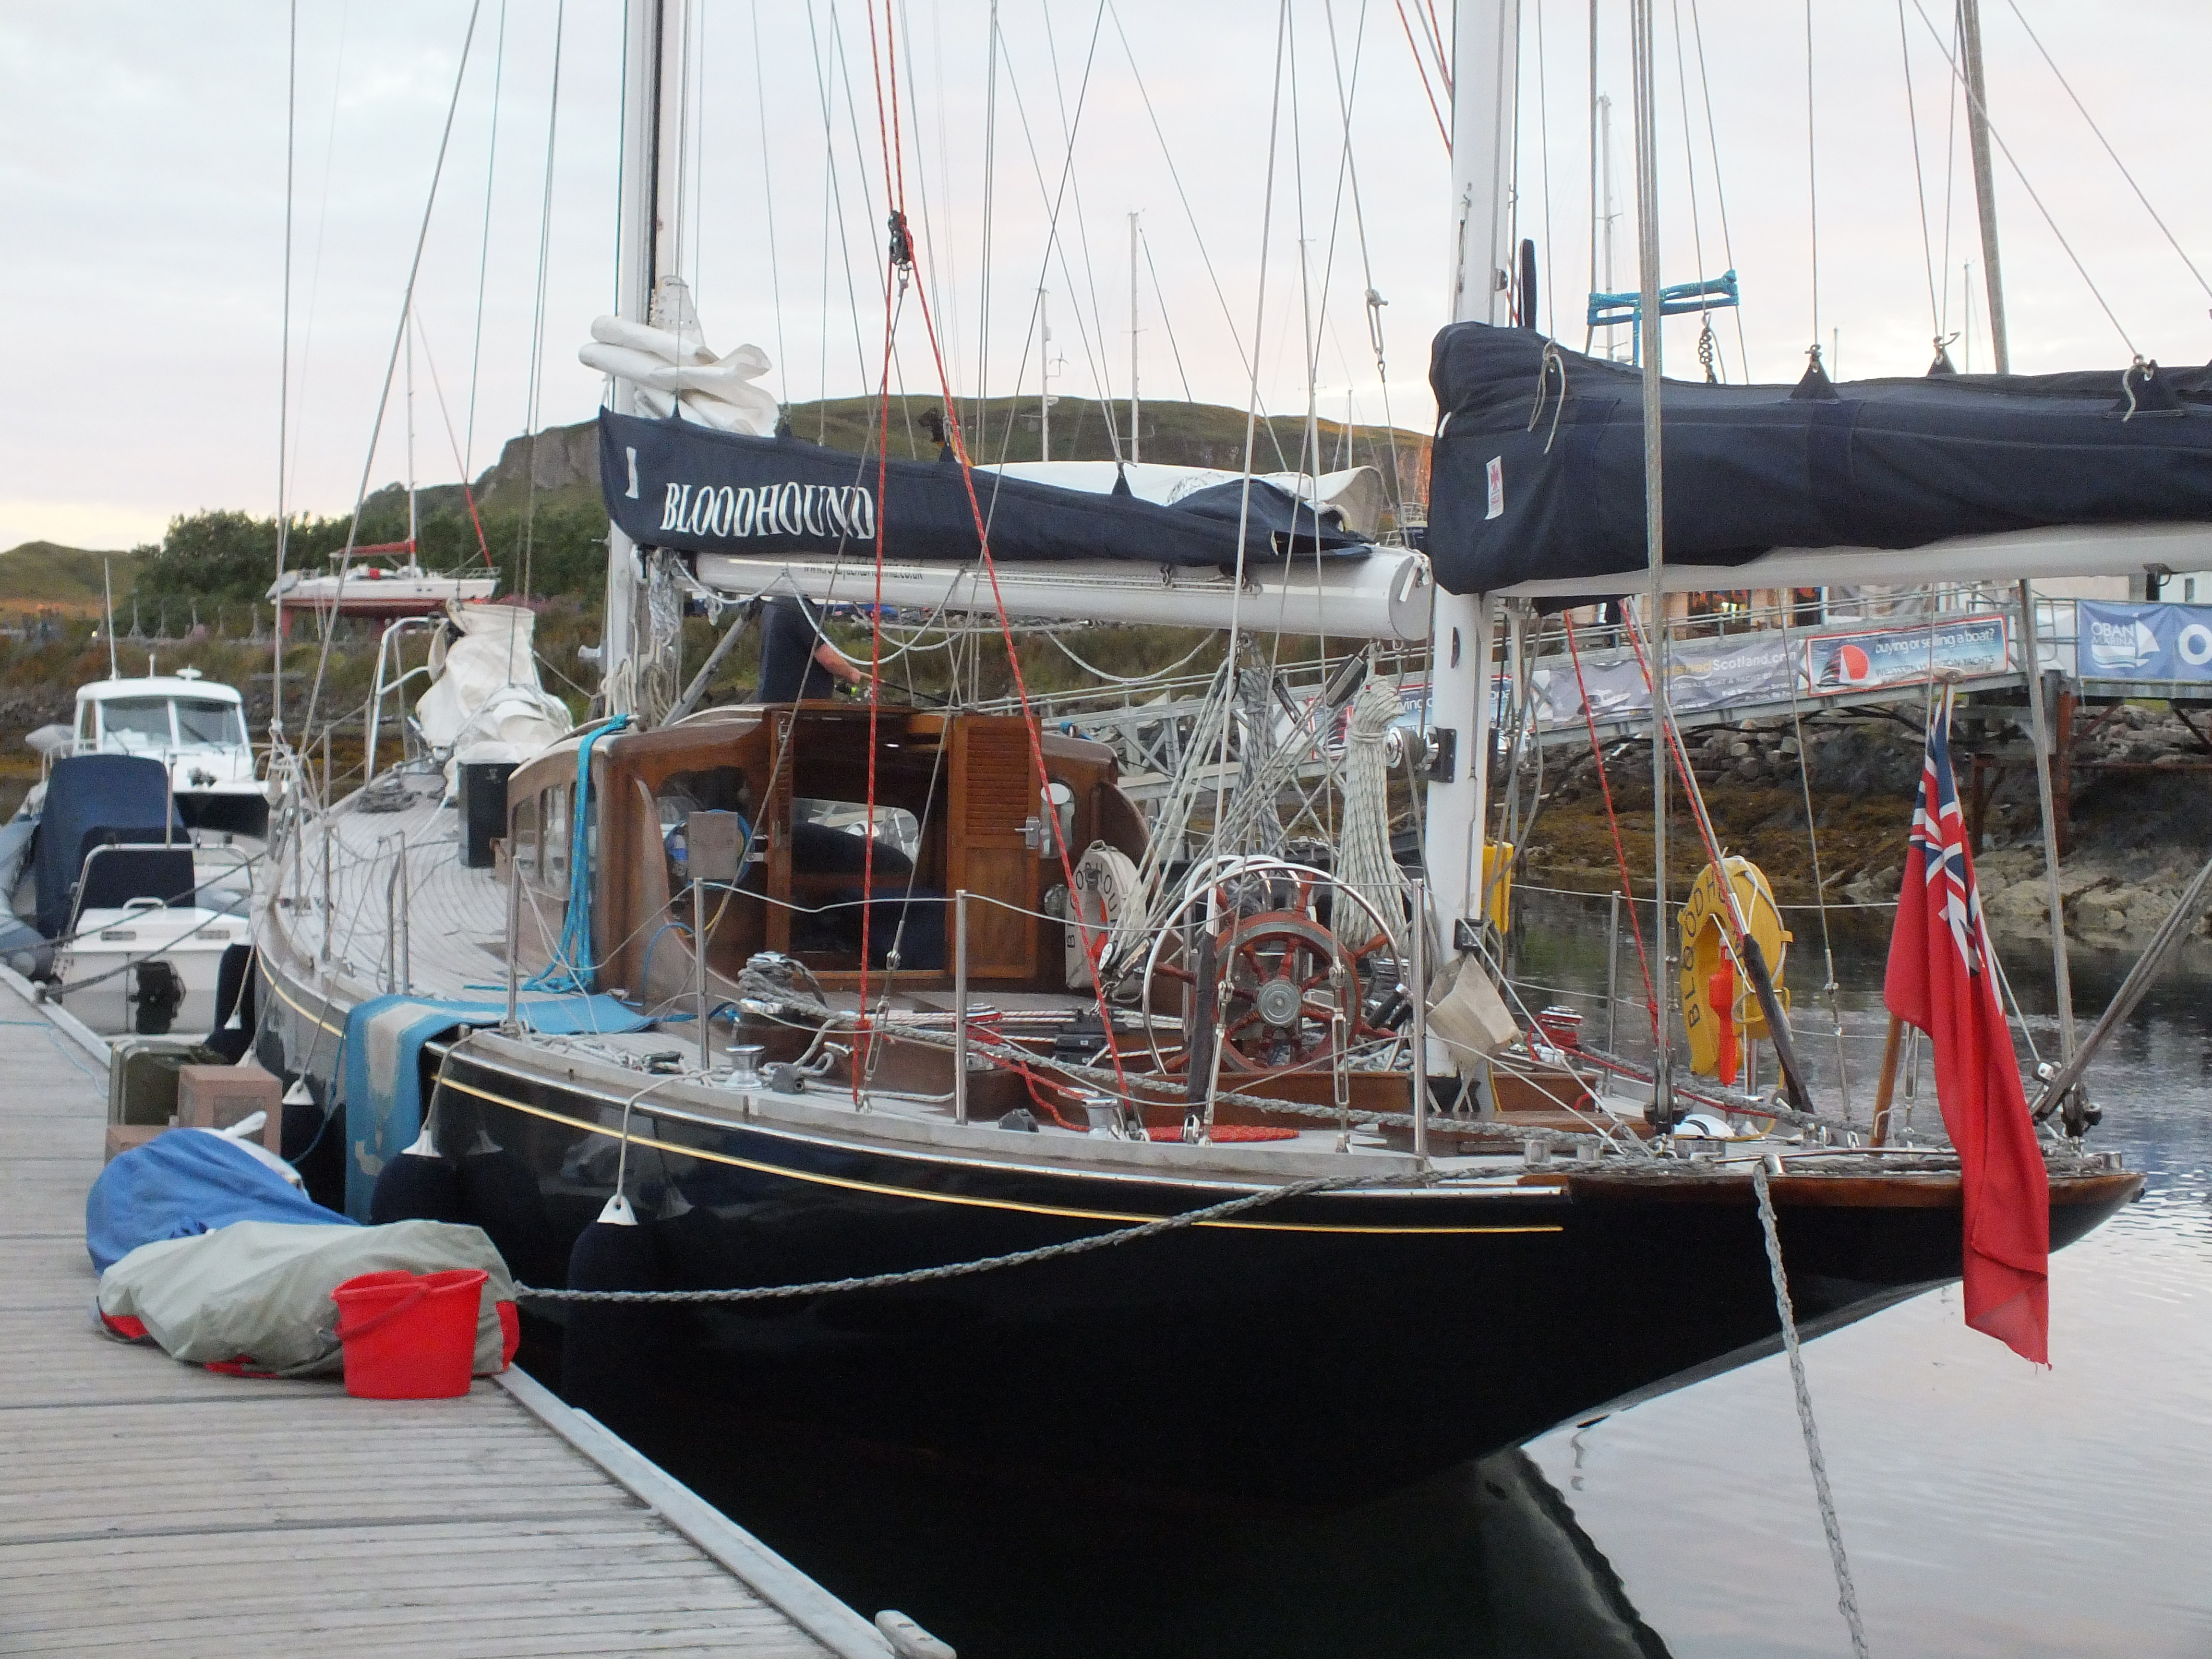 The famous yacht Bloodhound in Oban